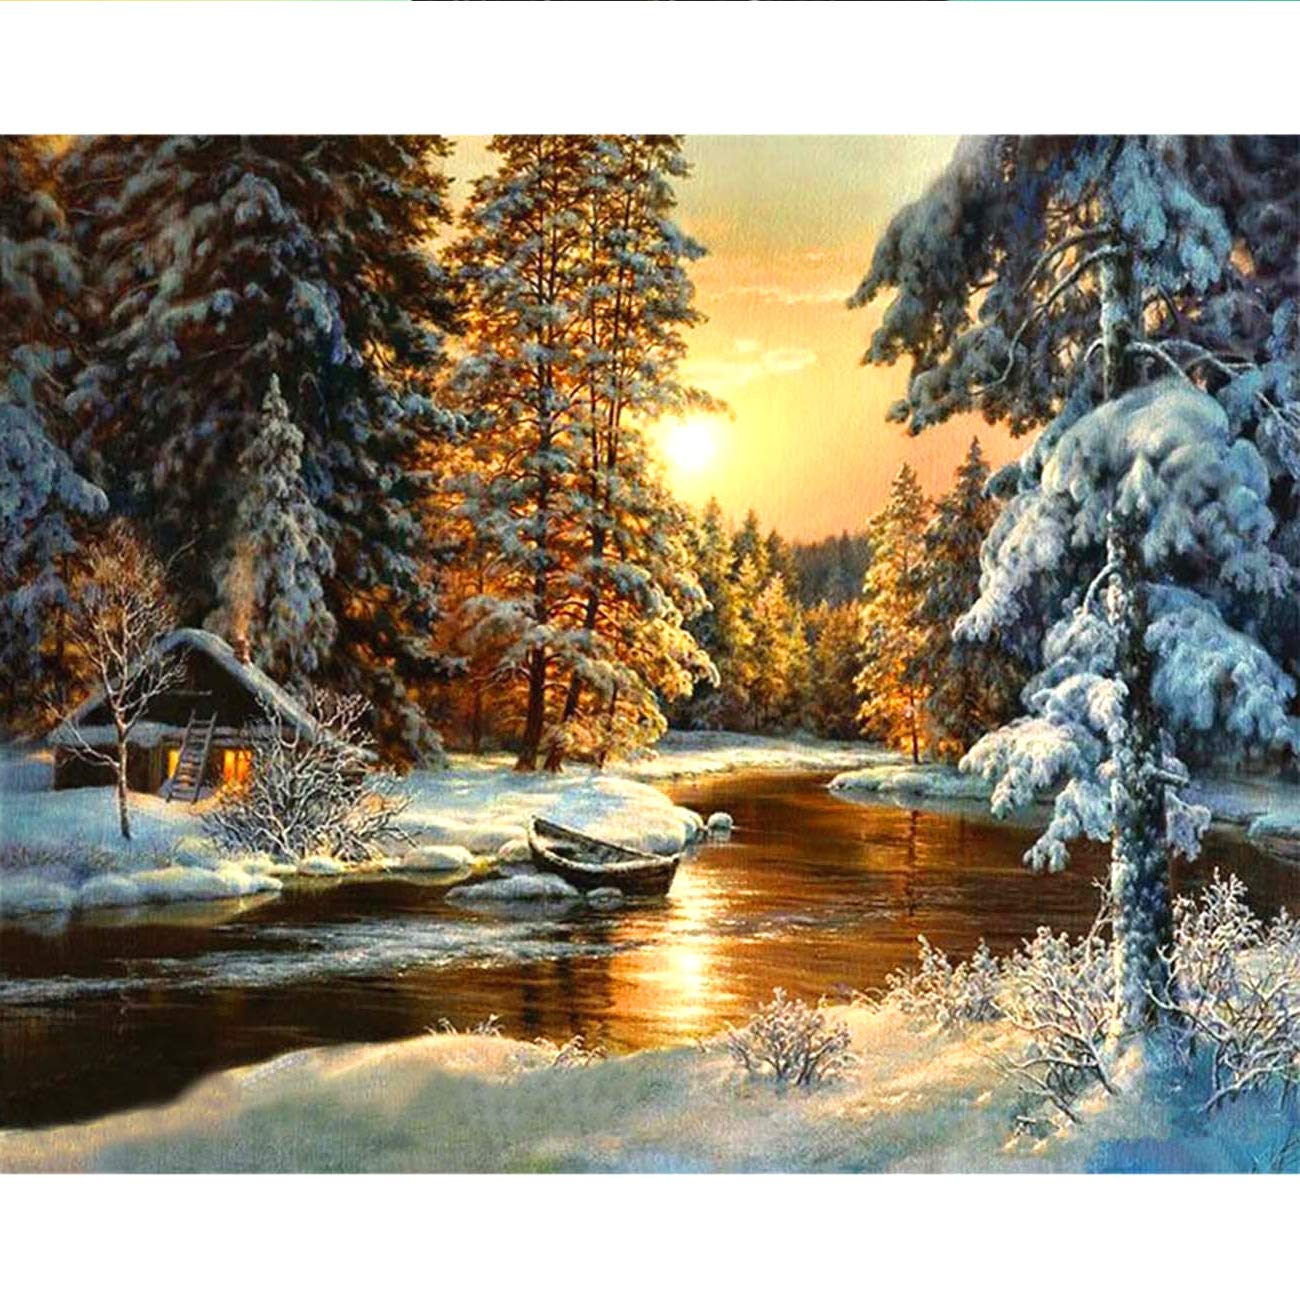 5D Diamond Painting Sunset Forest Cottage in Winter Full Drill by Number, SKRYUIE DIY Rhinestone Pasted Paint with Diamond Set Arts Craft Decorations (10x14inch)